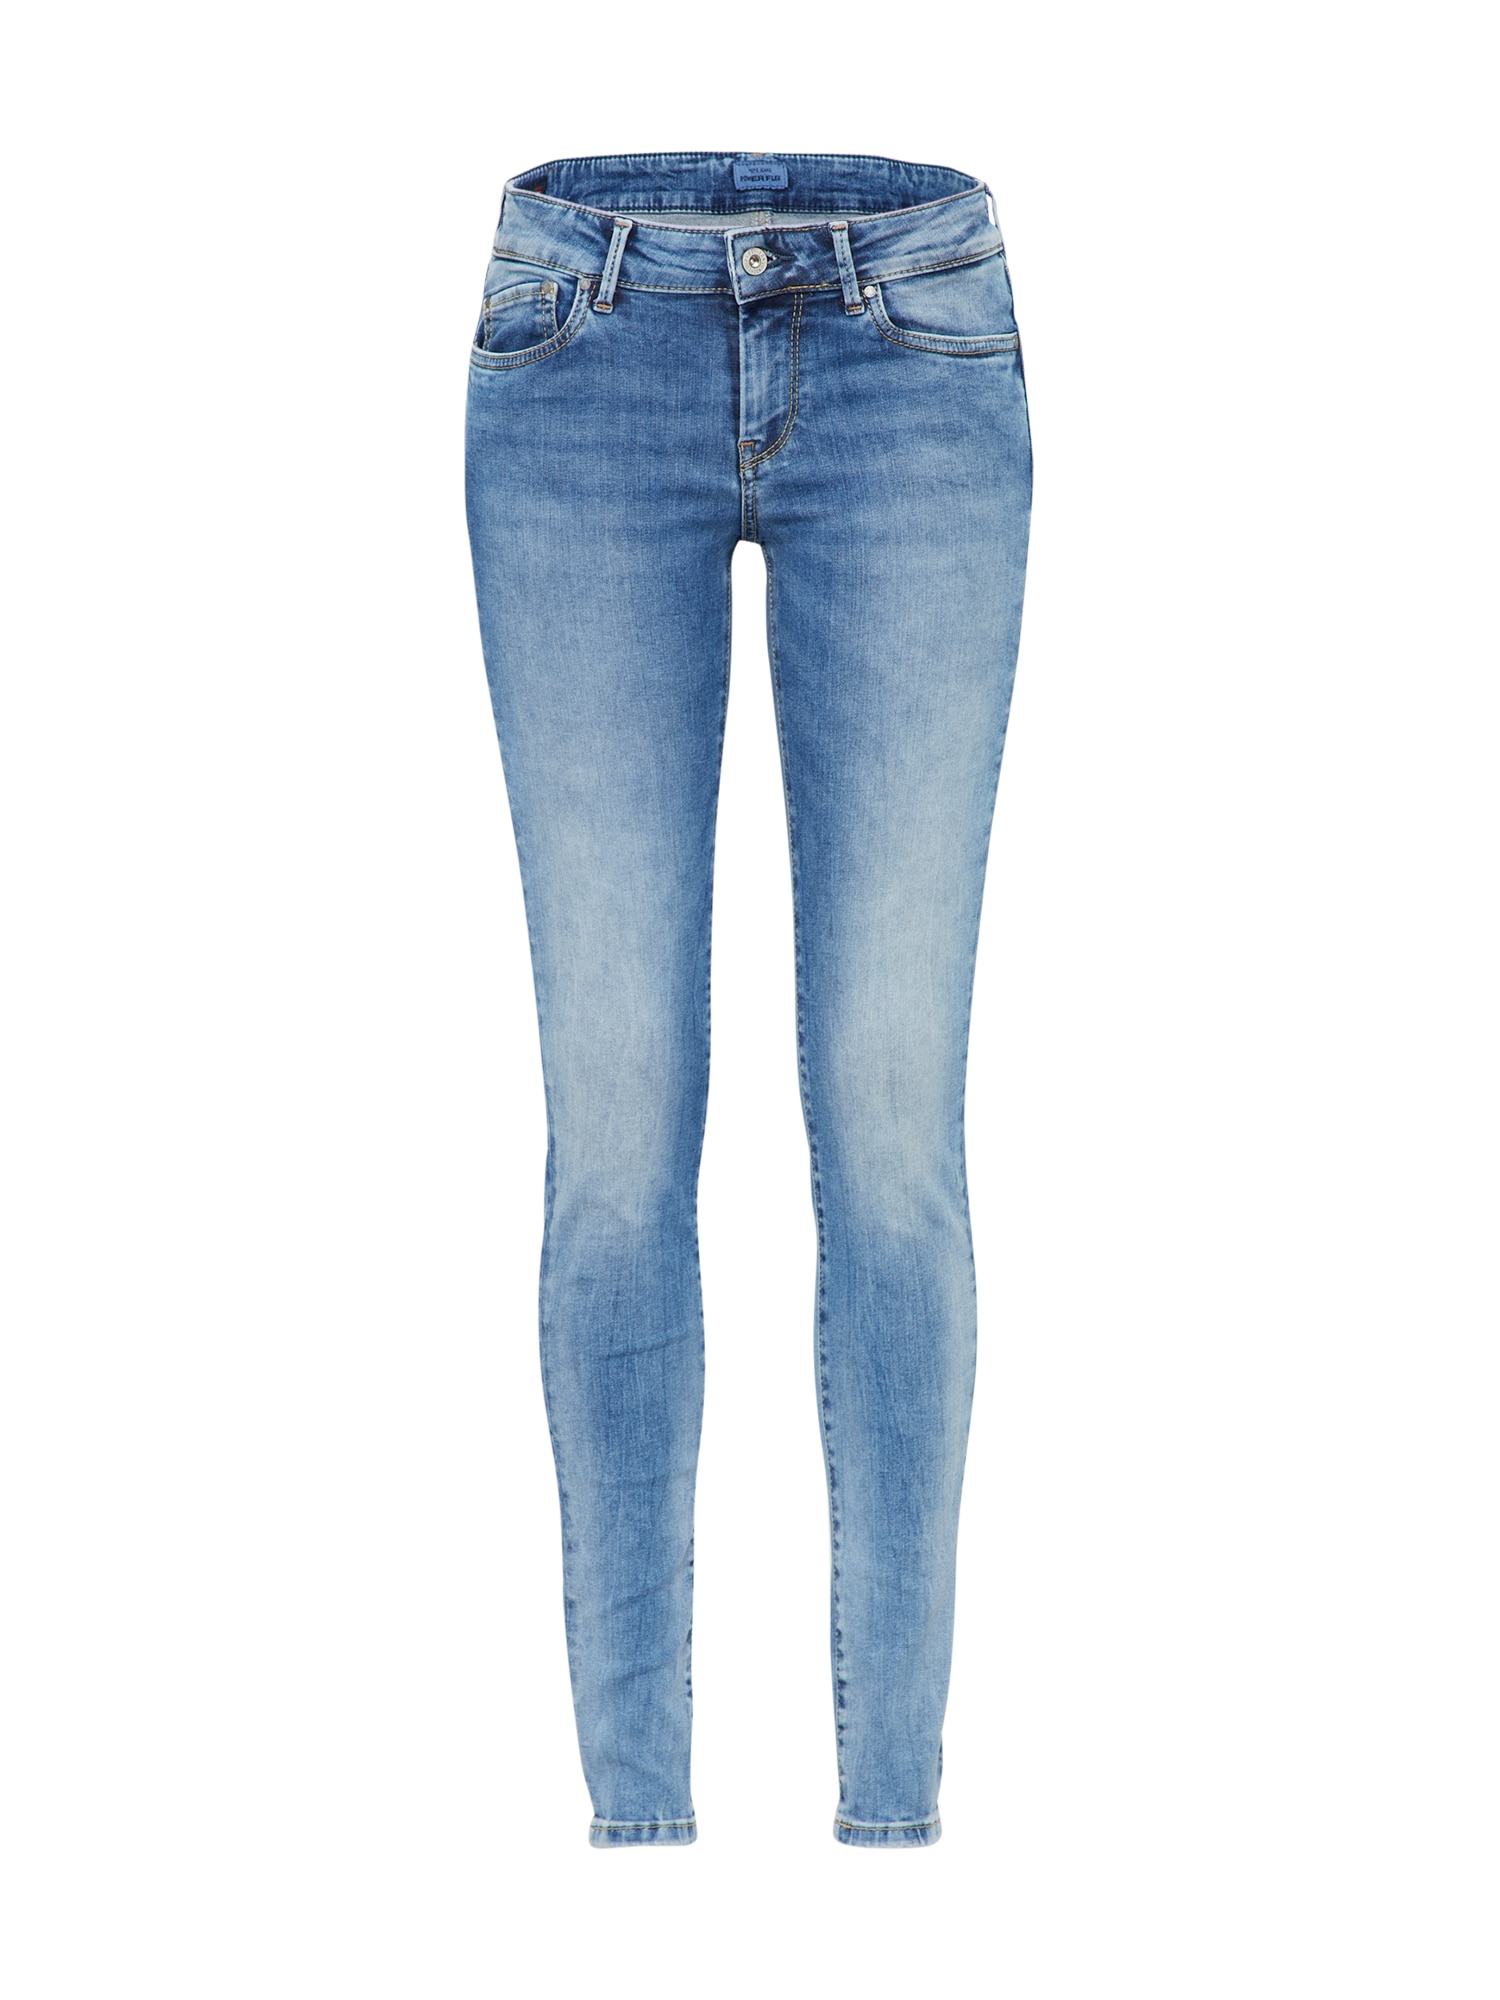 Pepe Jeans Dames Jeans Pixie blauw